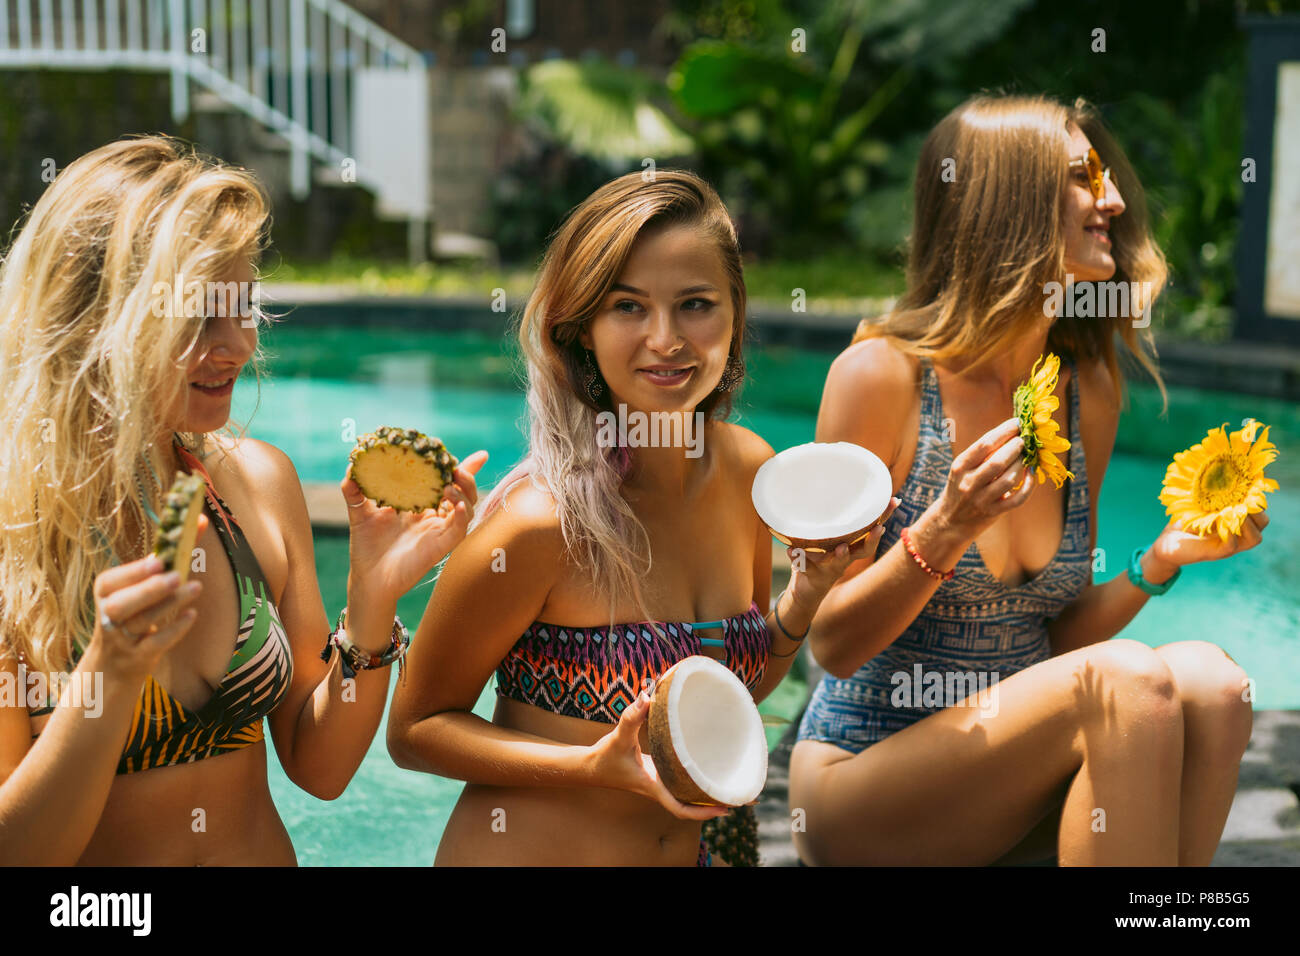 beautiful young women in swimwear holding sliced tropical fruits and flowers near swimming pool - Stock Image